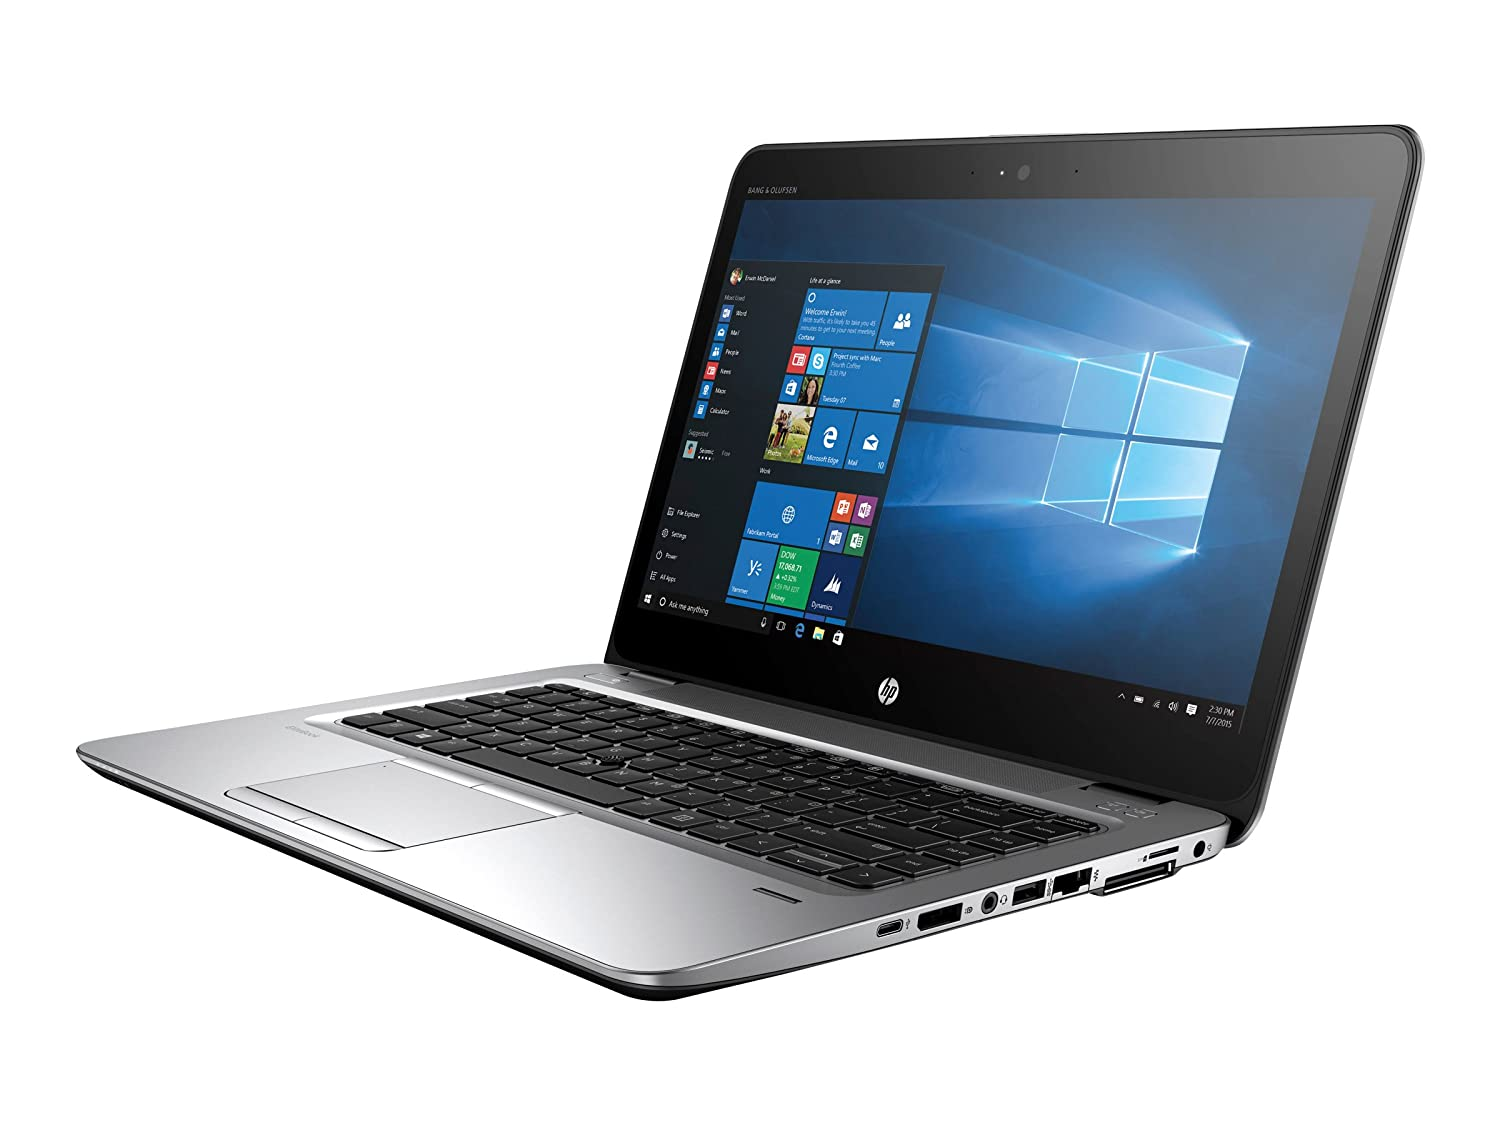 "HP Elitebook 840 G3 Notebook - V1H23UT#ABA (14"" FHD Display, i5-6300U  2 4GHz, 8GB RAM, HD Webcam, Windows 7/10 Pro 64)"